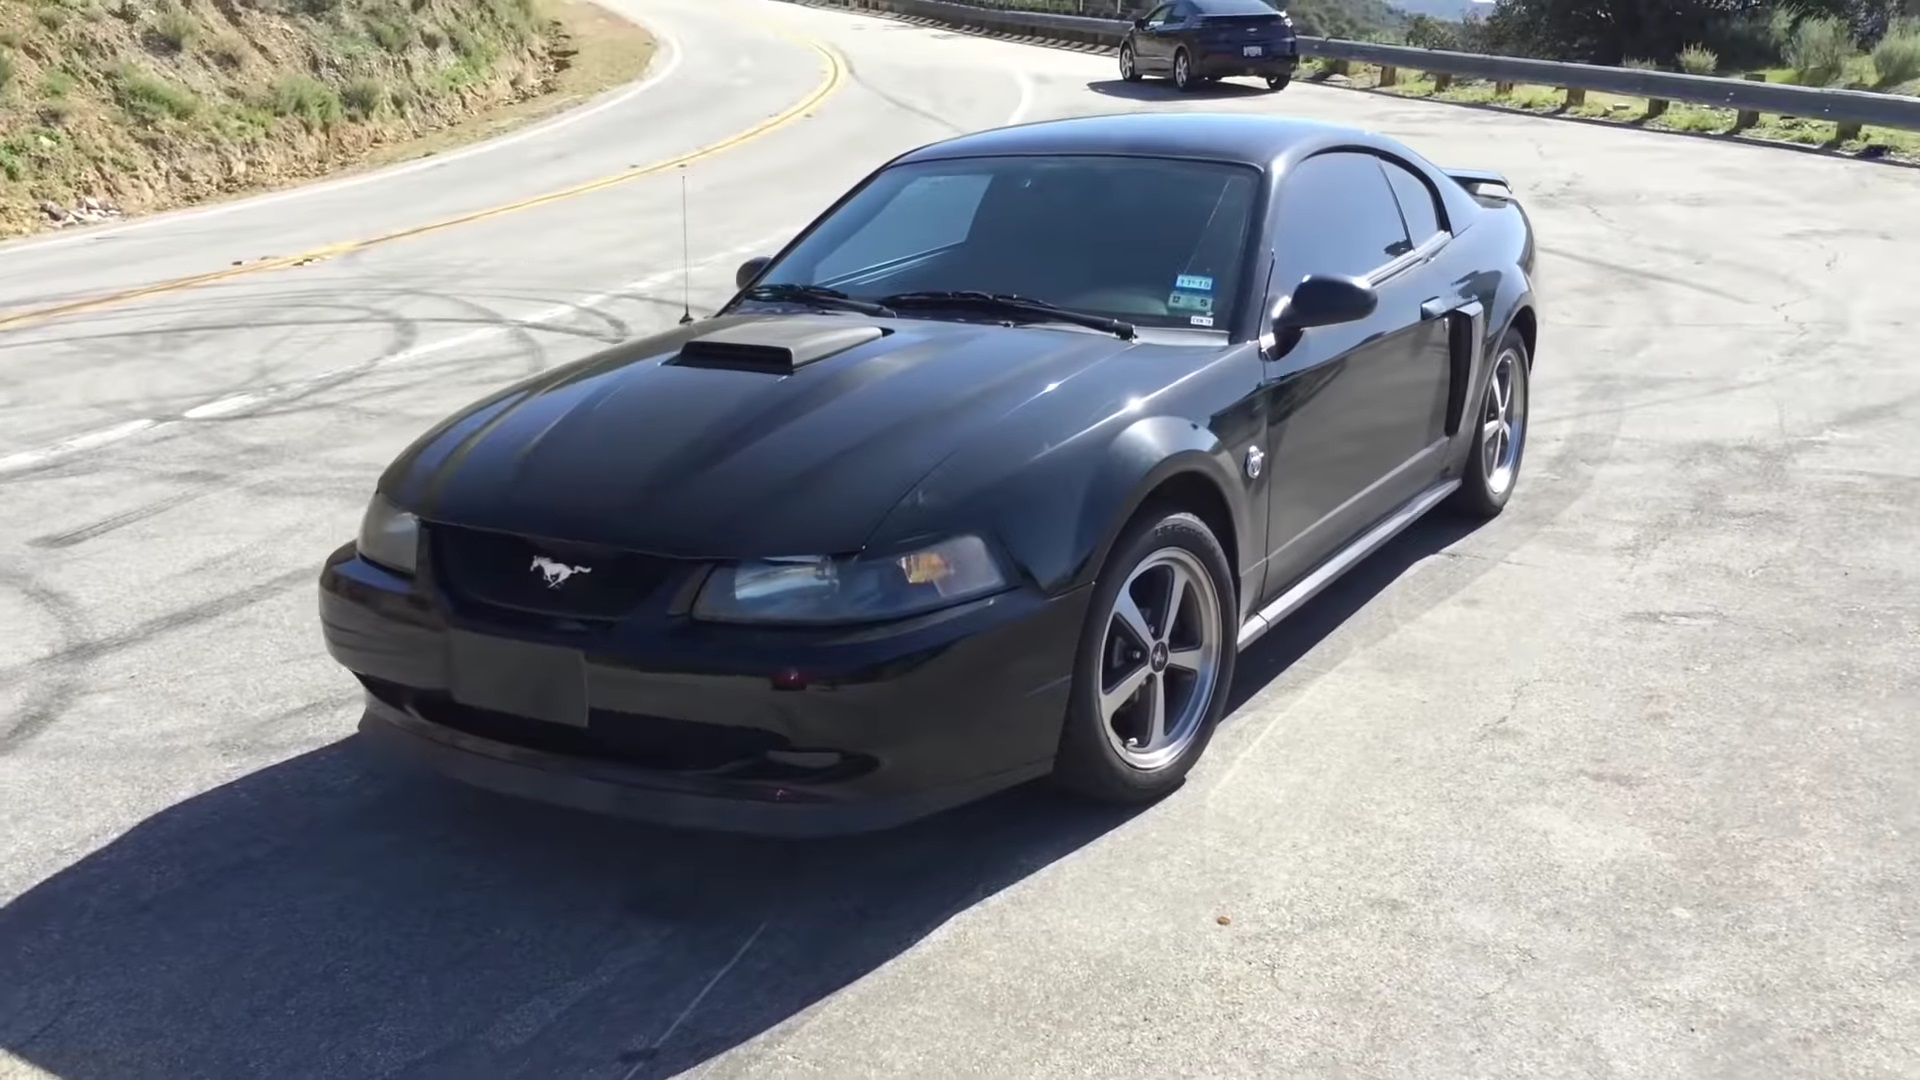 Video: 2004 Ford Mustang Mach 1 Complete Walkthrough